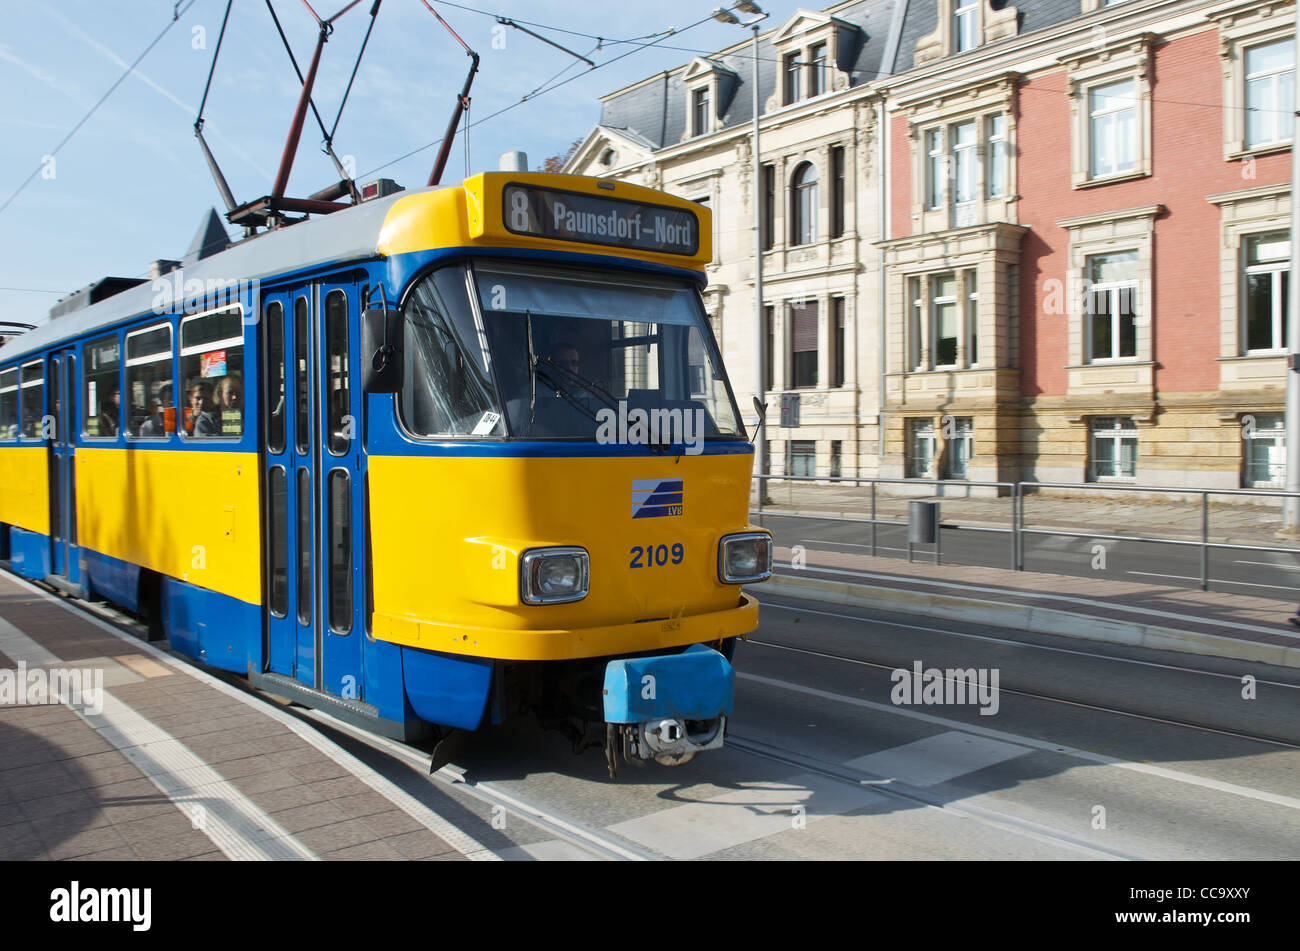 An older style yellow and blue electric tram on the streets of Leipzig in Germany - Stock Image